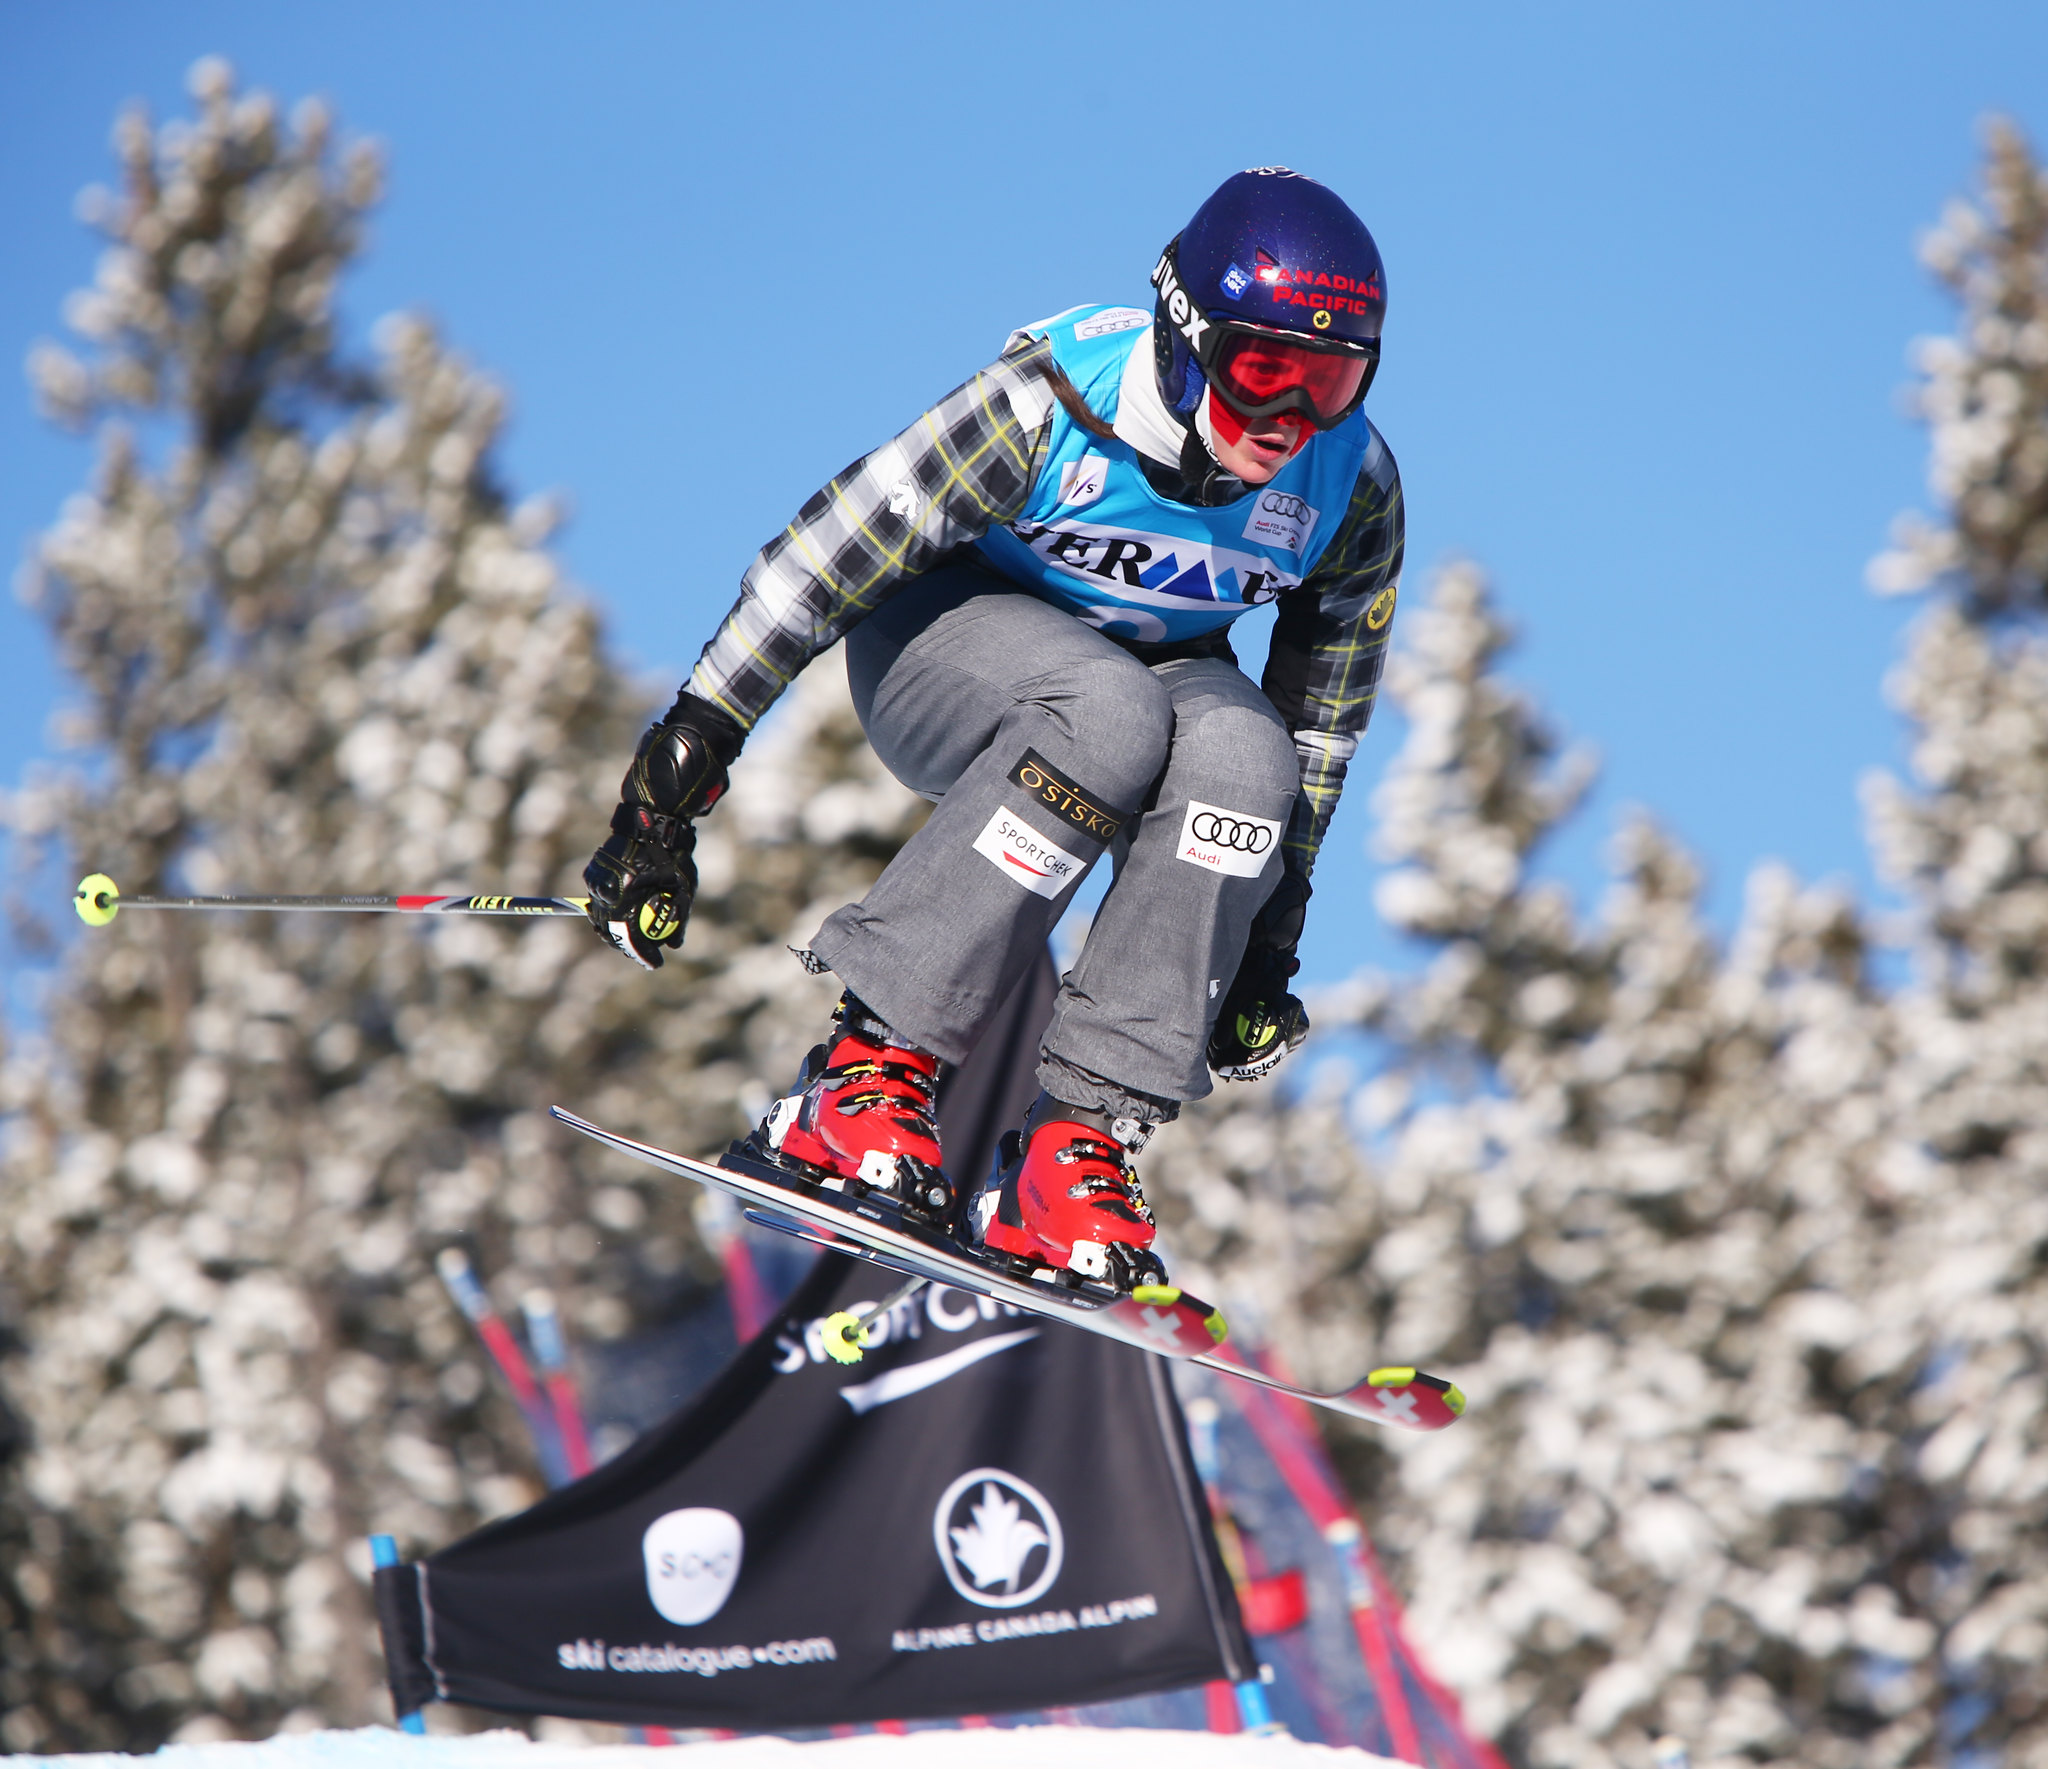 Kelsey Serwa in action during the FIS Ski Cross World Cup qualification in Nakiska, CAN